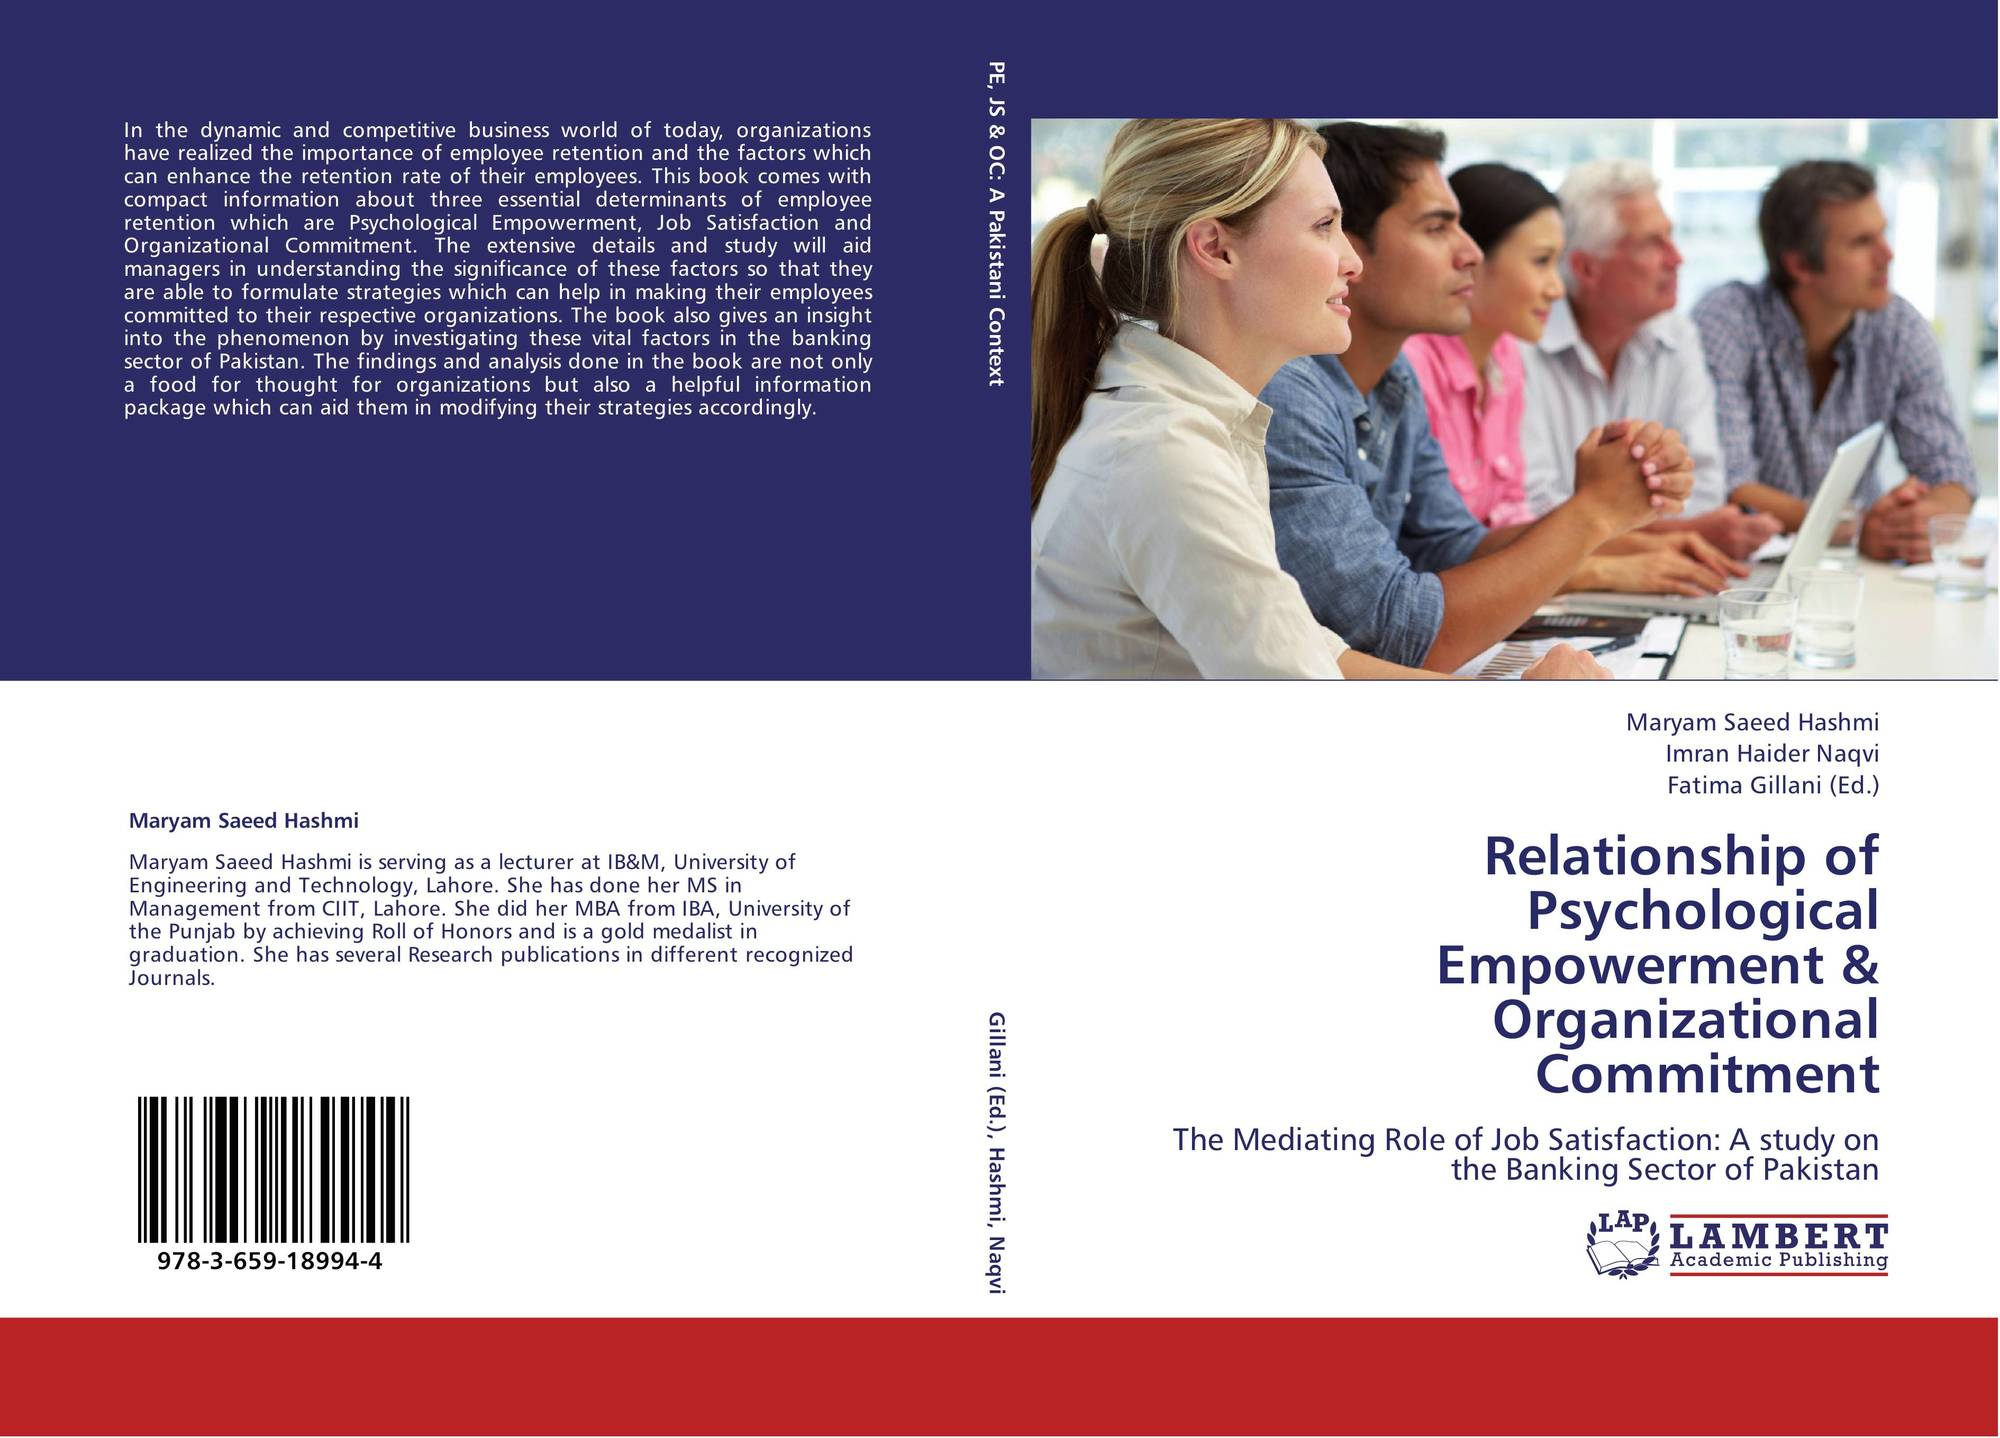 a study on psychological empowerment of Psychological empowerment: the influence on organizational commitment among employees in the construction this study will focus on the psychological empowerment.